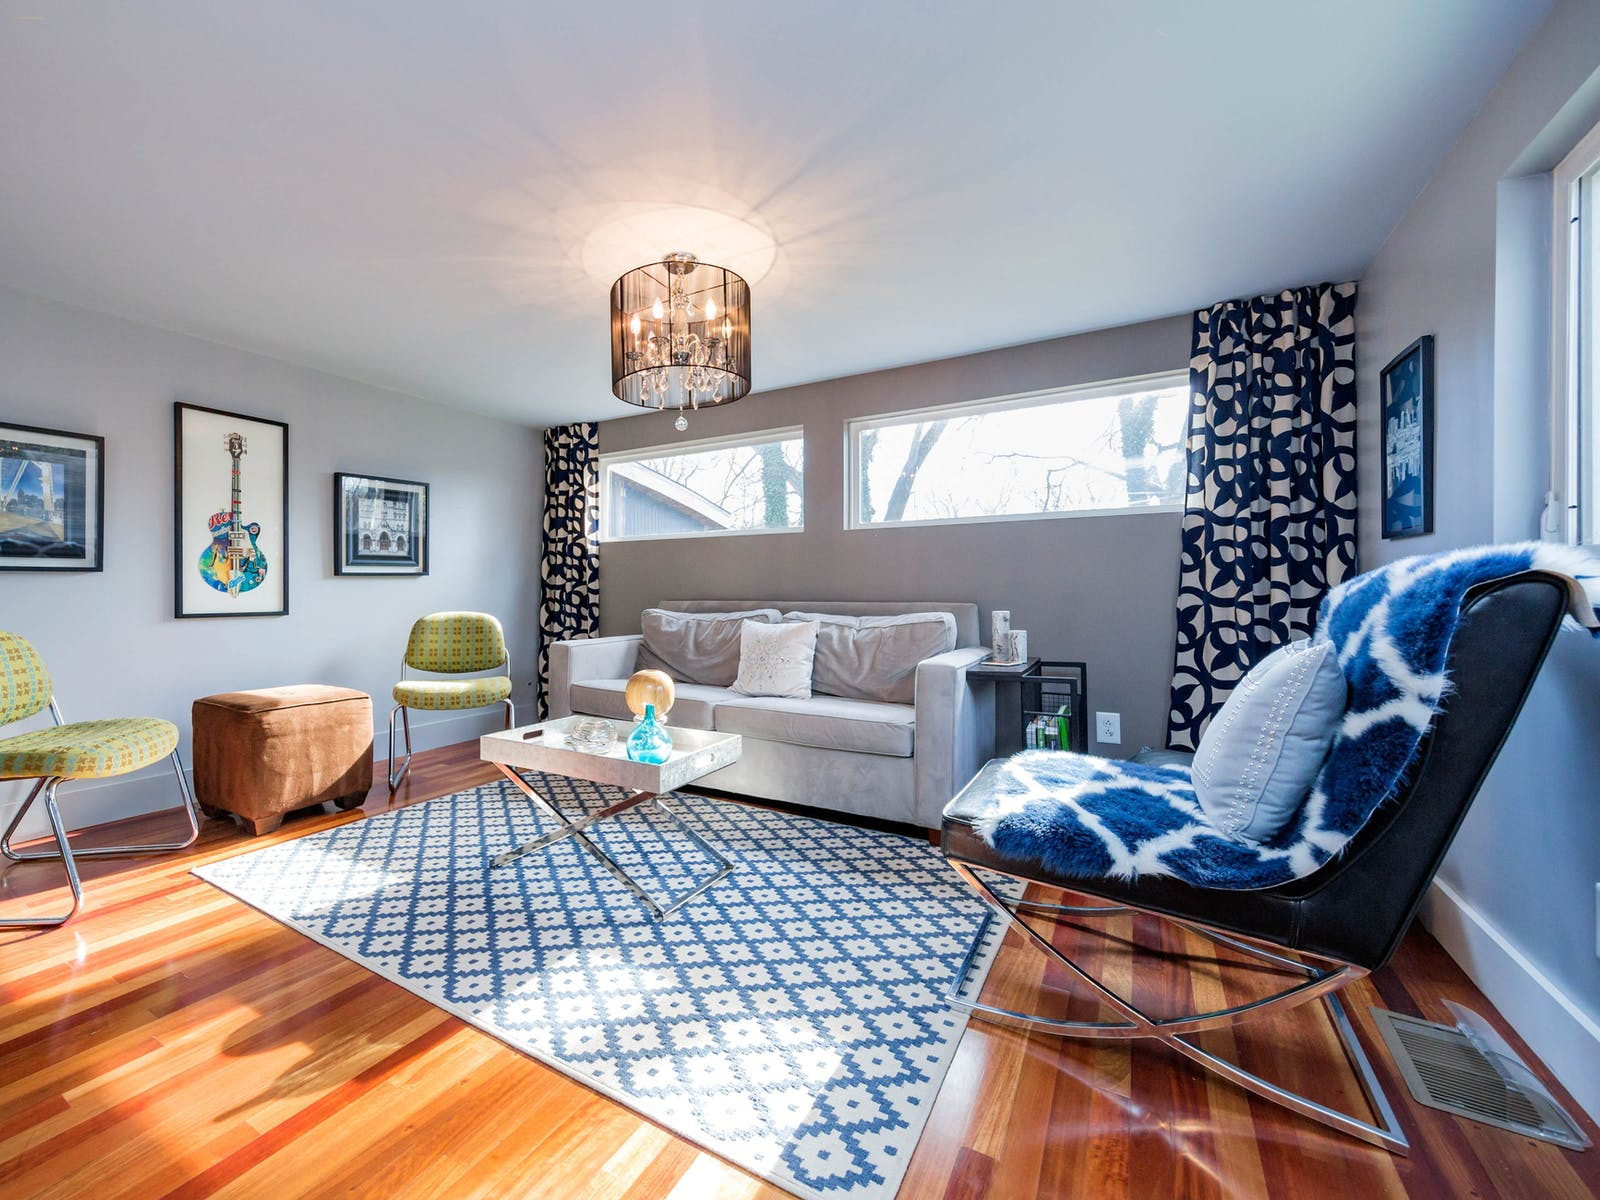 vacation rental in nashville, tn decorated in blue hues